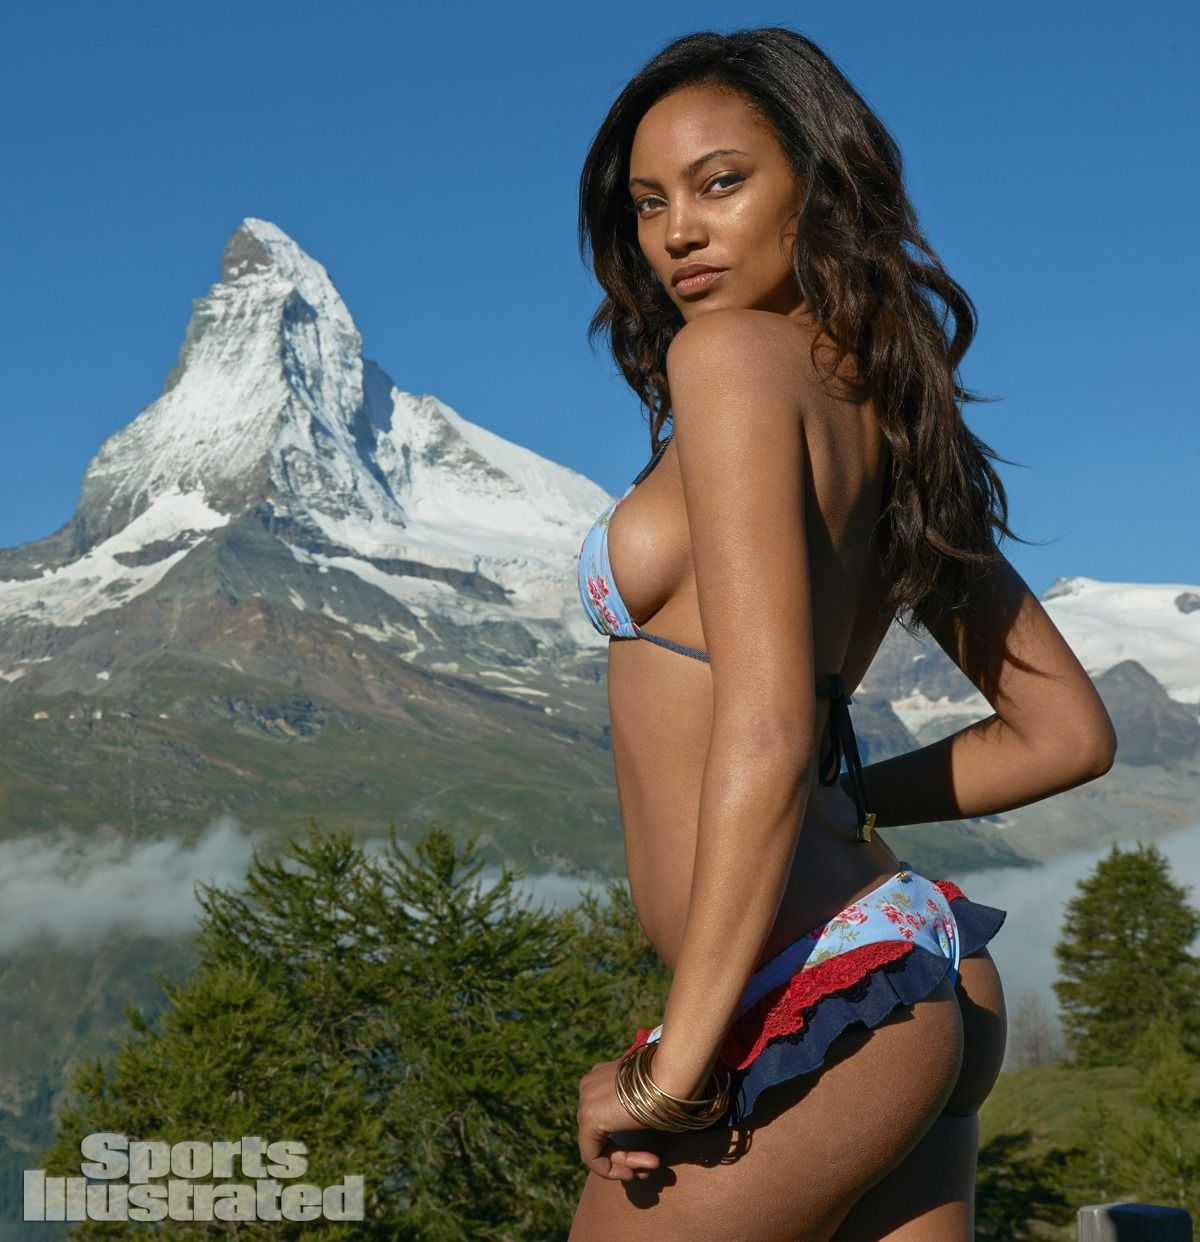 ariel-meredith-in-sports-illustrated-2014-swimsuit-issue_18.jpg - 172.71 KB